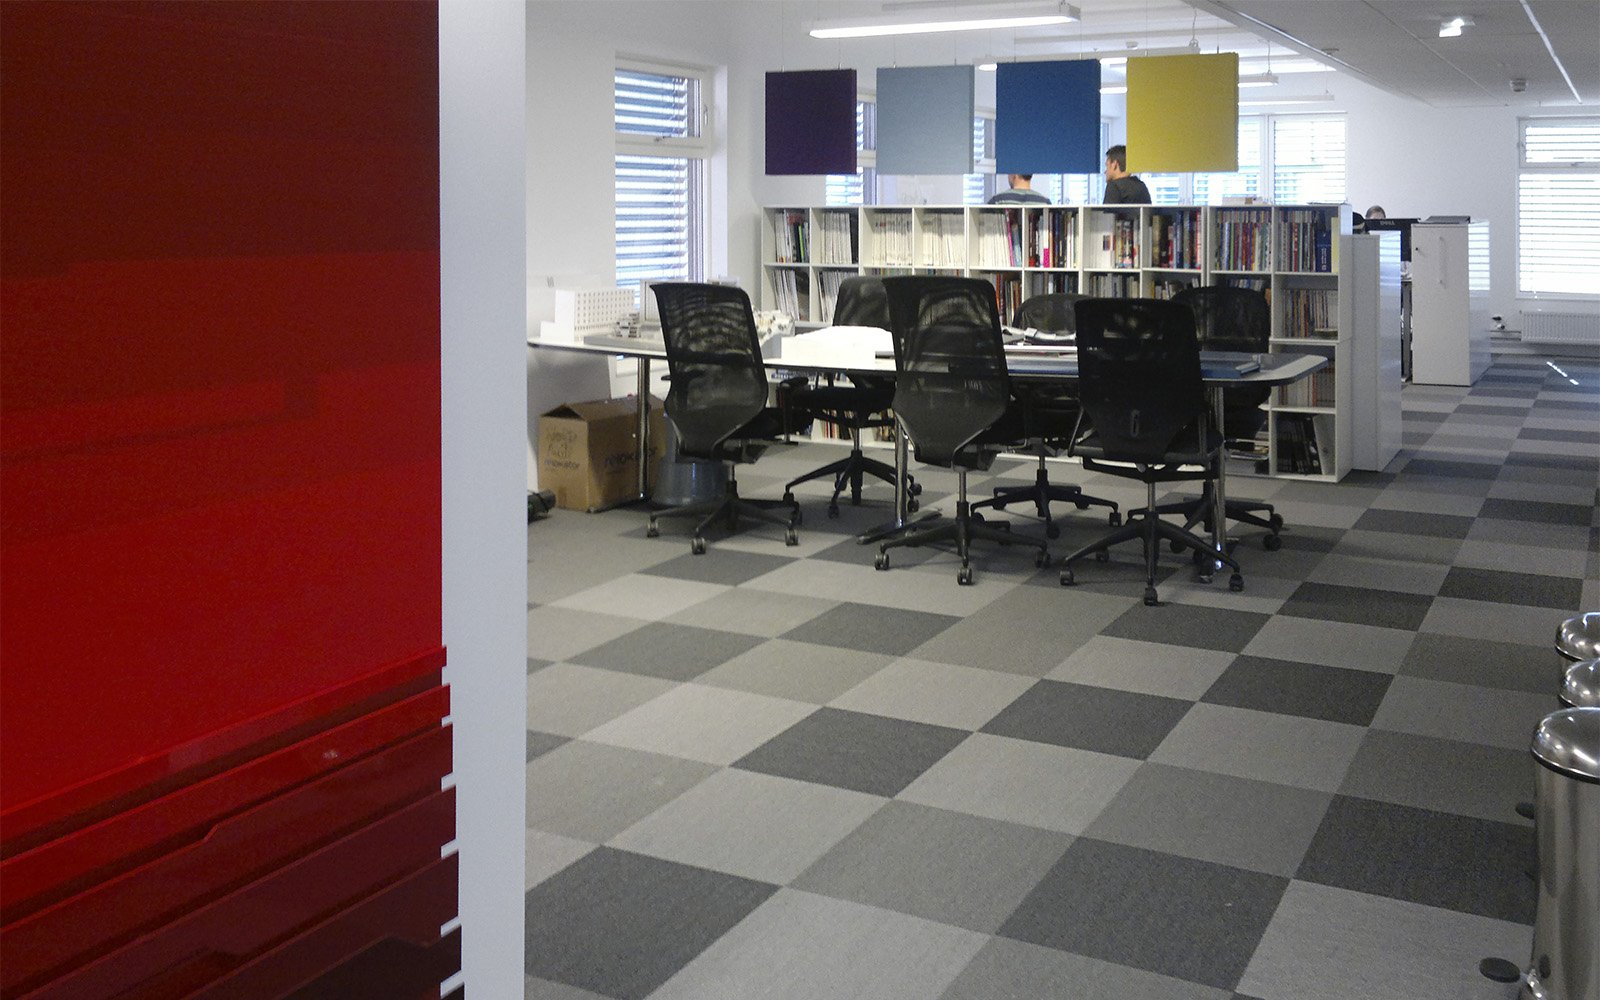 grey-office-carpet-tiles-checkered